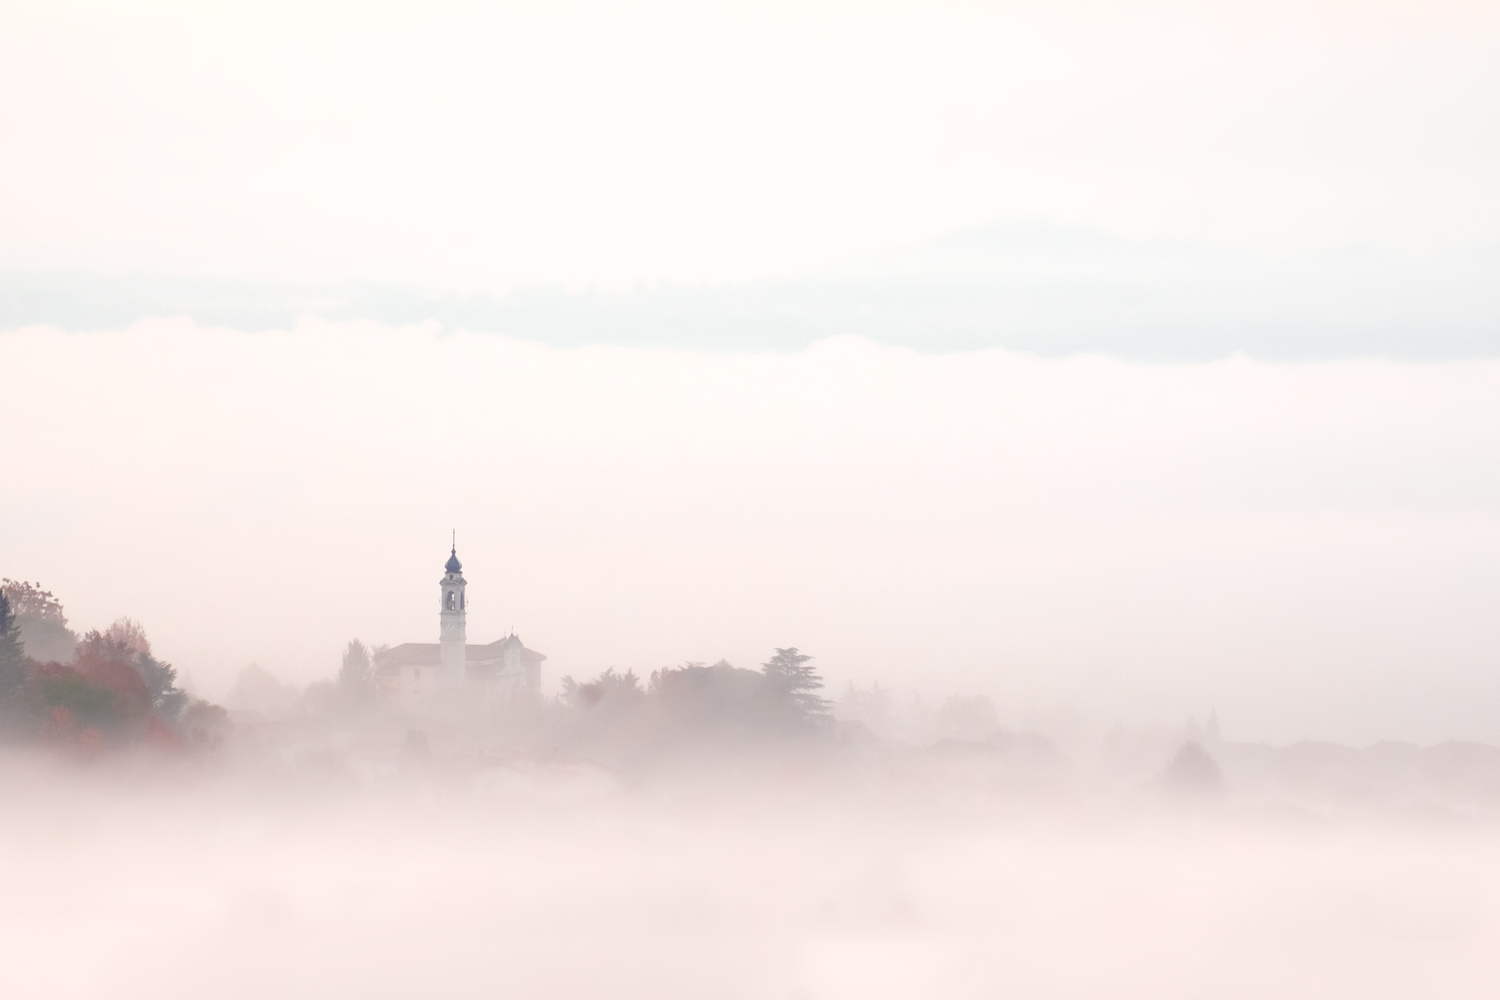 Foggy Morning by Andrea Re Depaolini